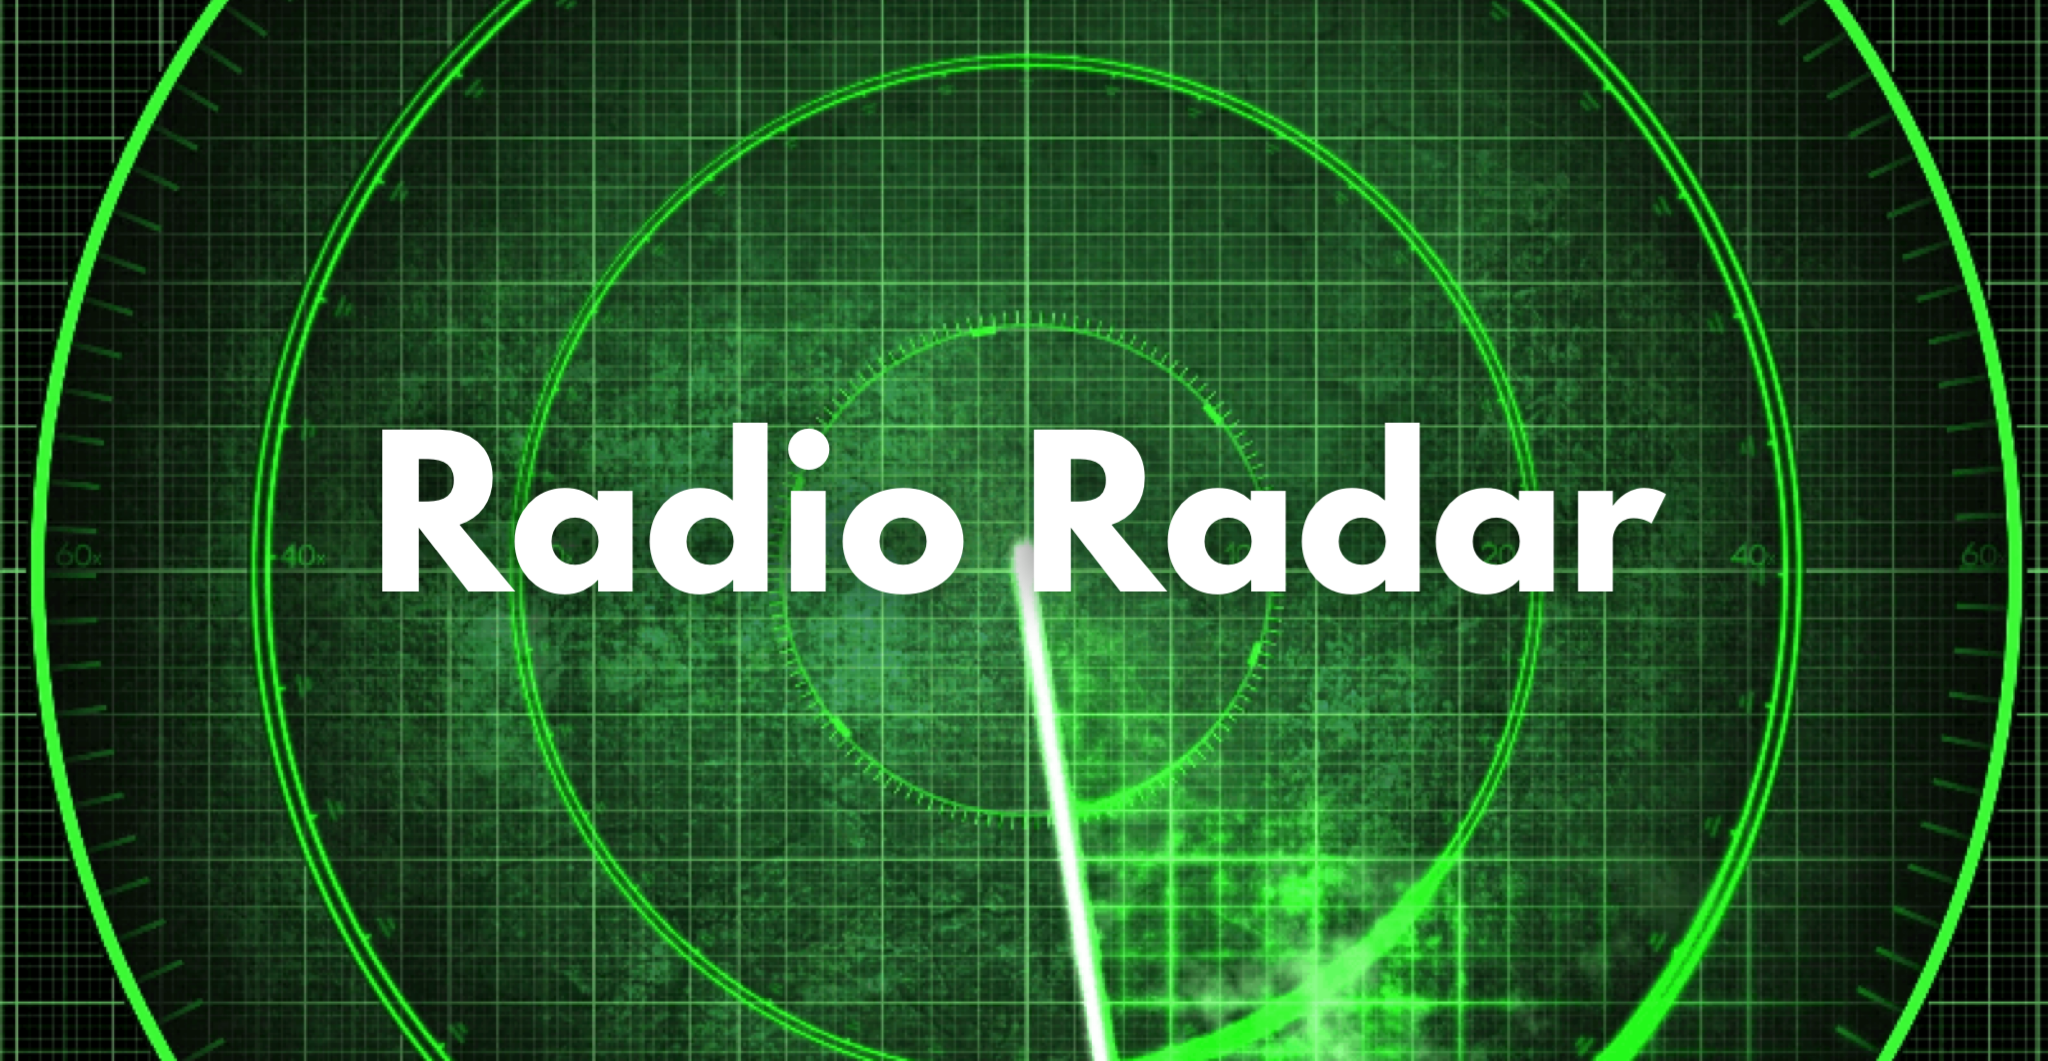 Radio Radar, Southern Gospel Chart, , Country Gospel Chart, Christian Country Chart, Bluegrass Gospel Chart, Christian Music Chart, Worship Music, Singing News Top 80, Worship Music Chart, Cashbox Magazine, SGN Scoops chart